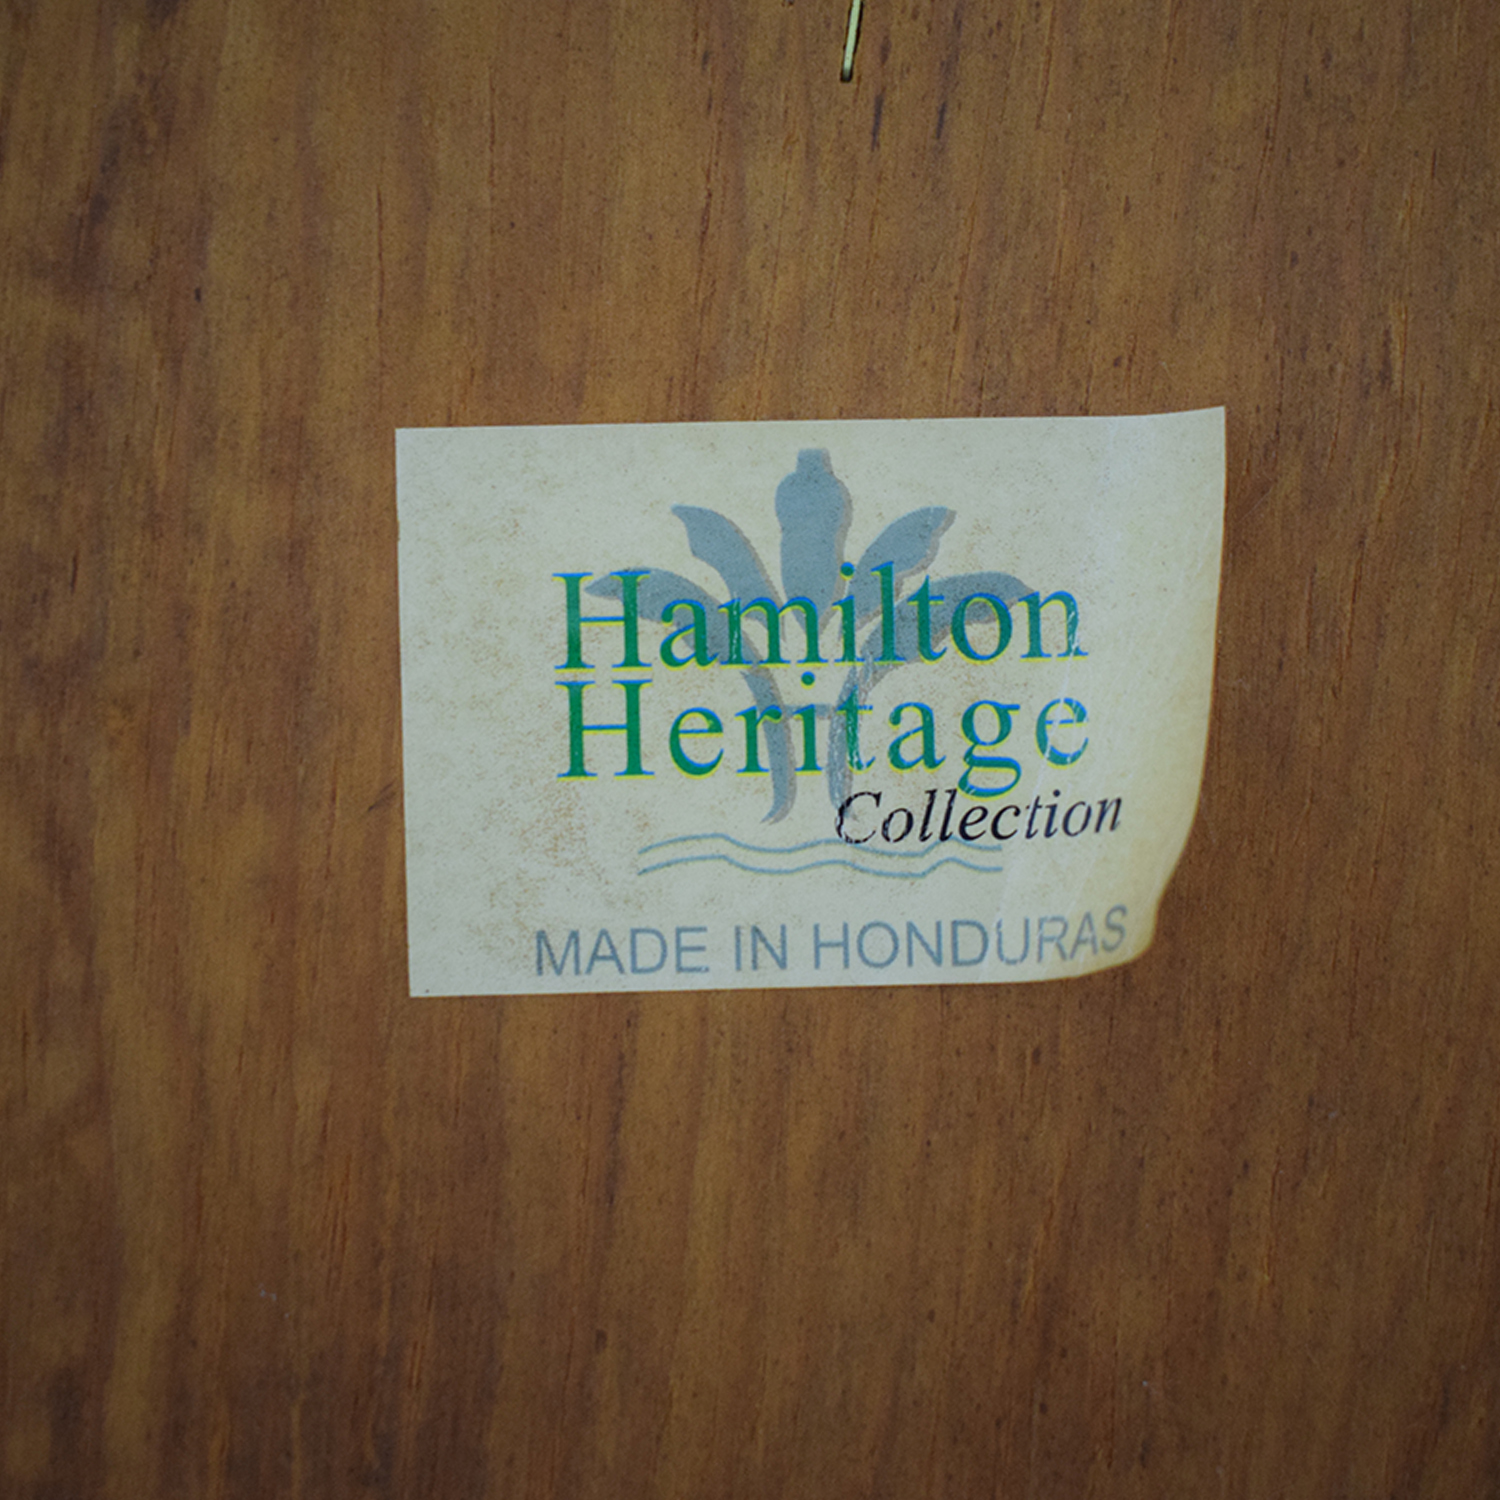 Hamilton Heritage Entertainment Cabinet sale